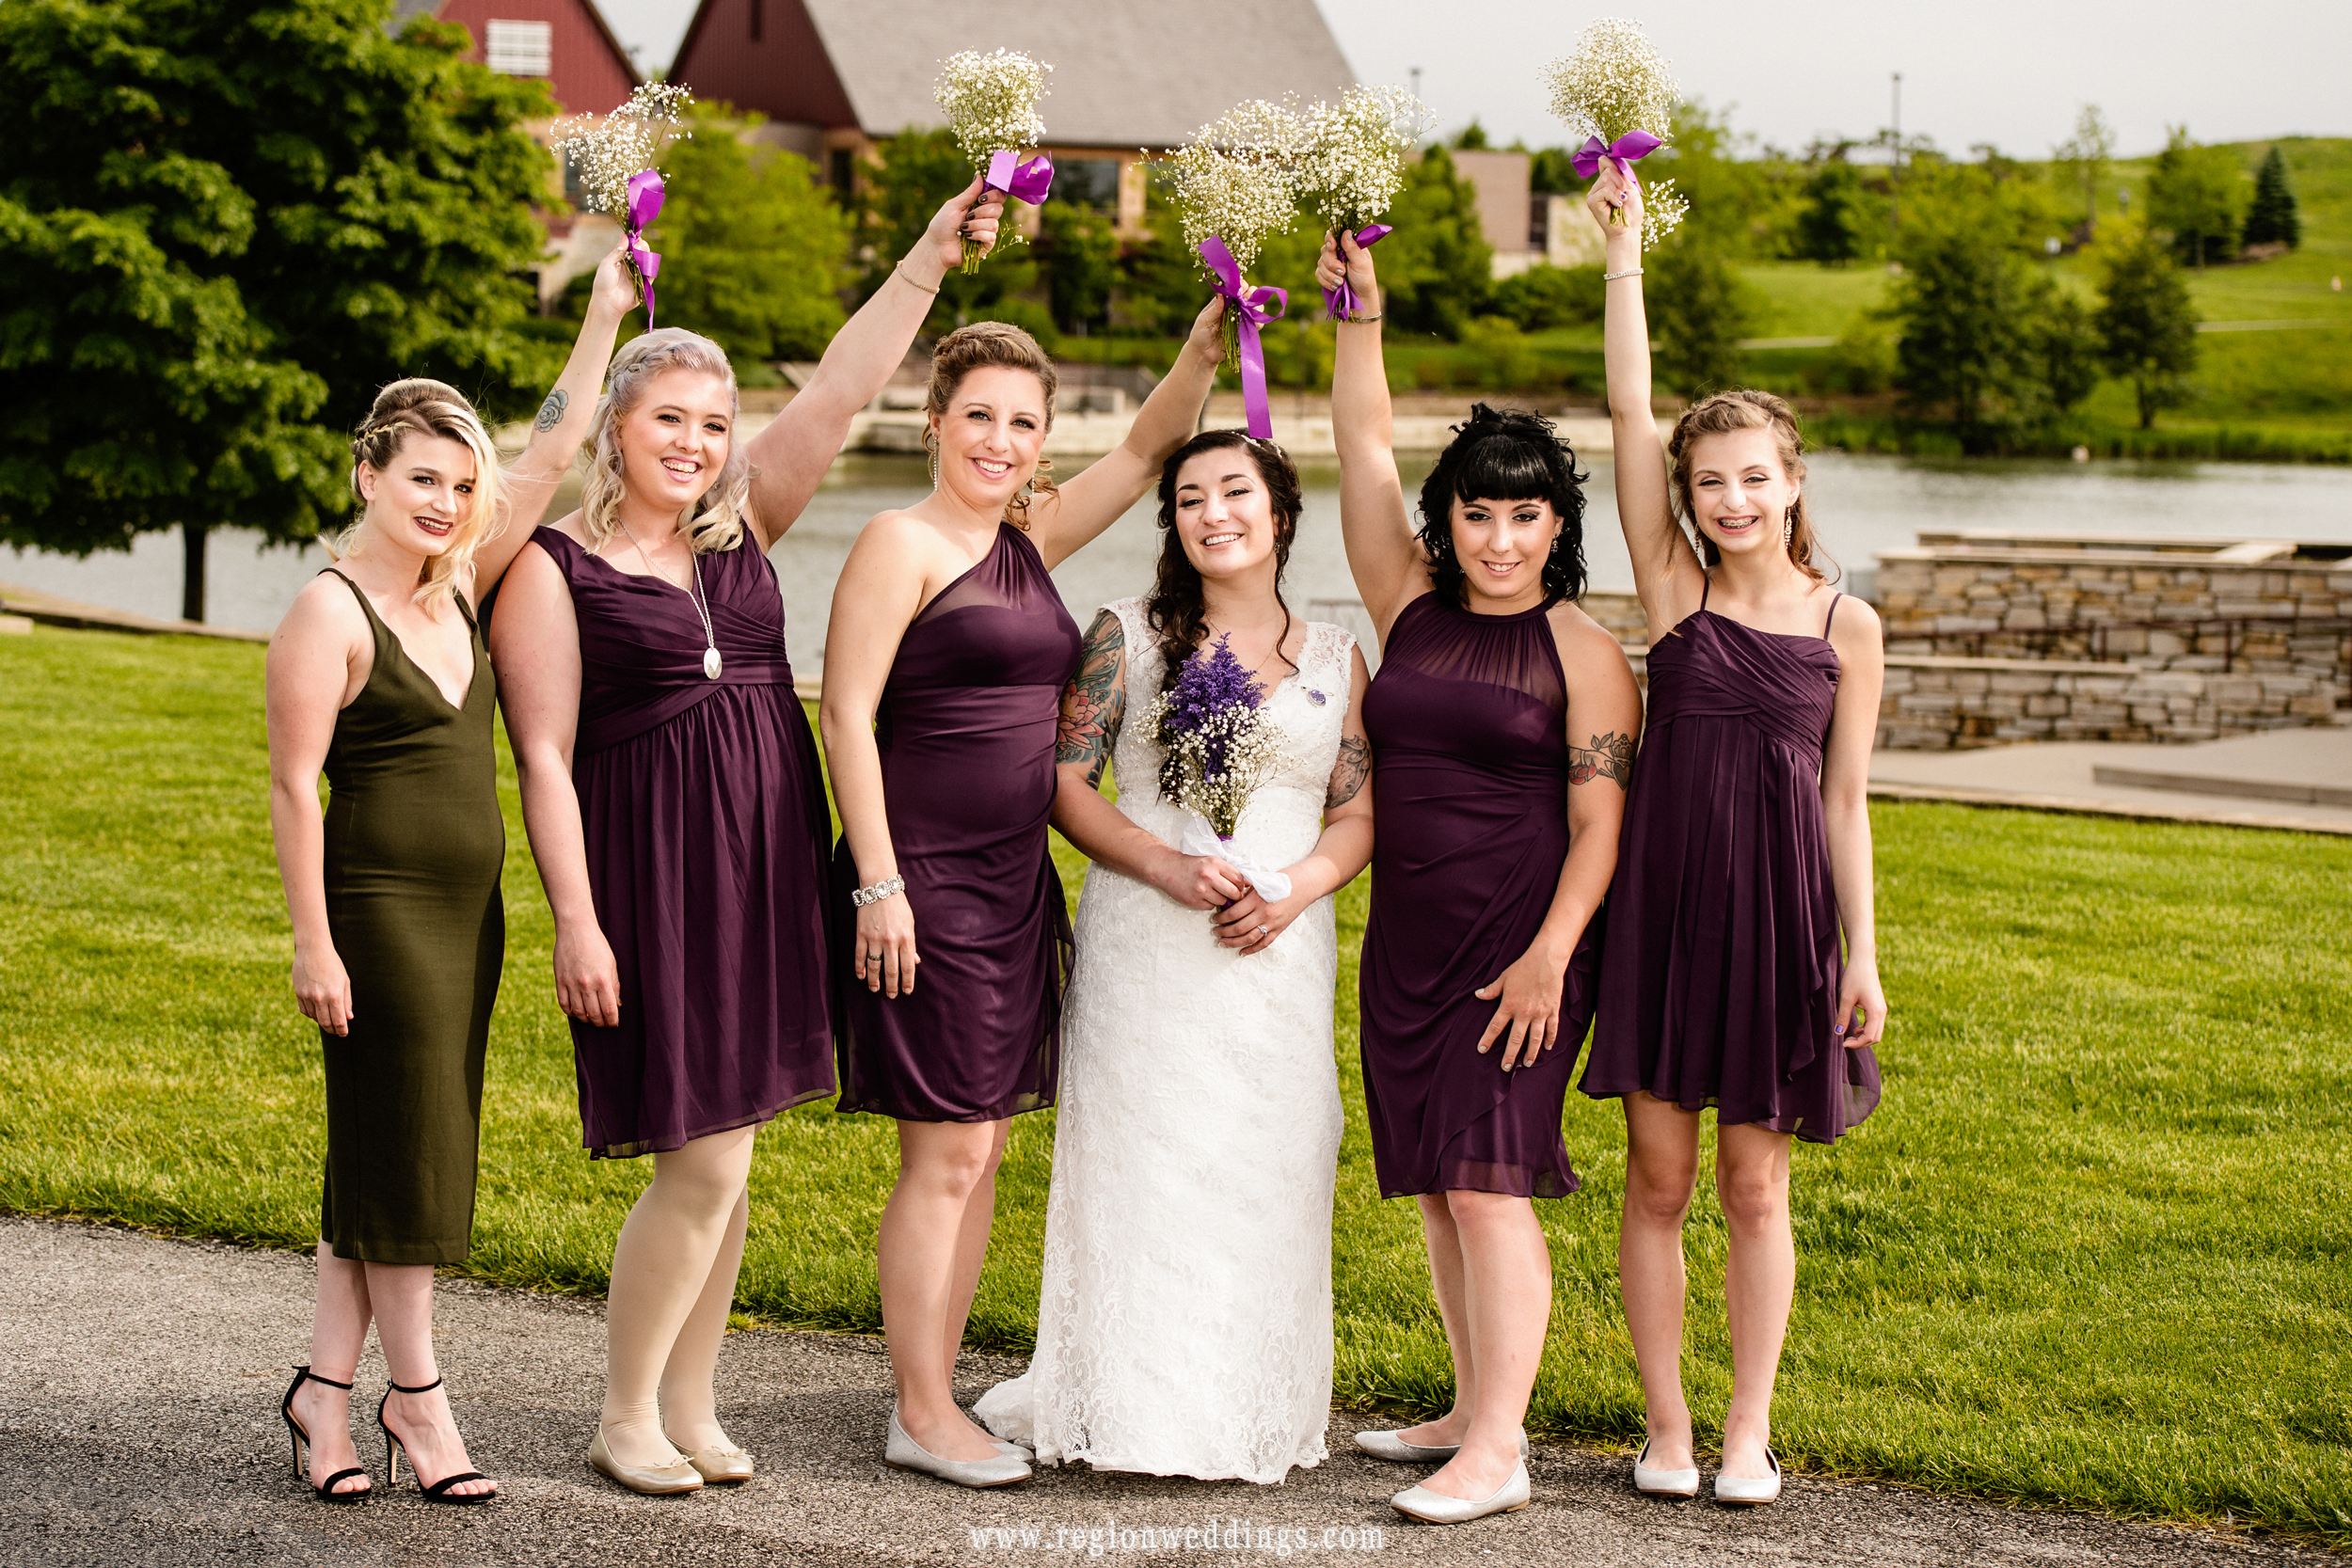 The bridesmaids cheer on the bride.